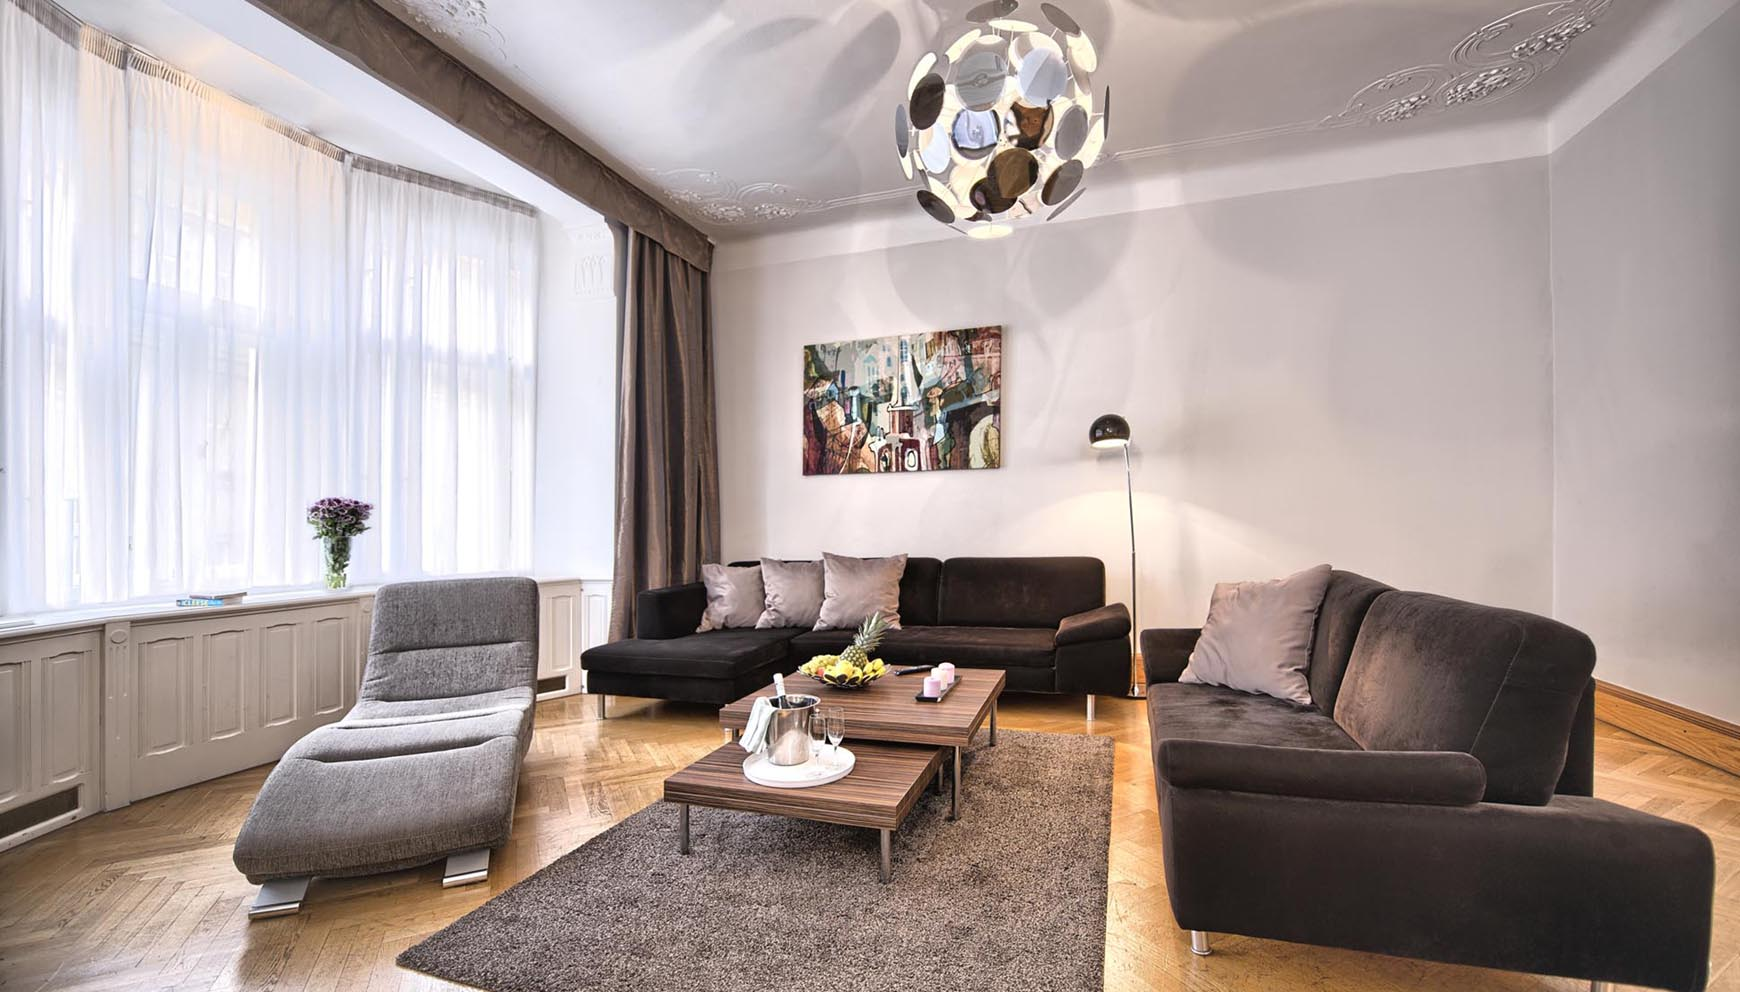 Living room in a three bedroom apartment in Residence Brehova